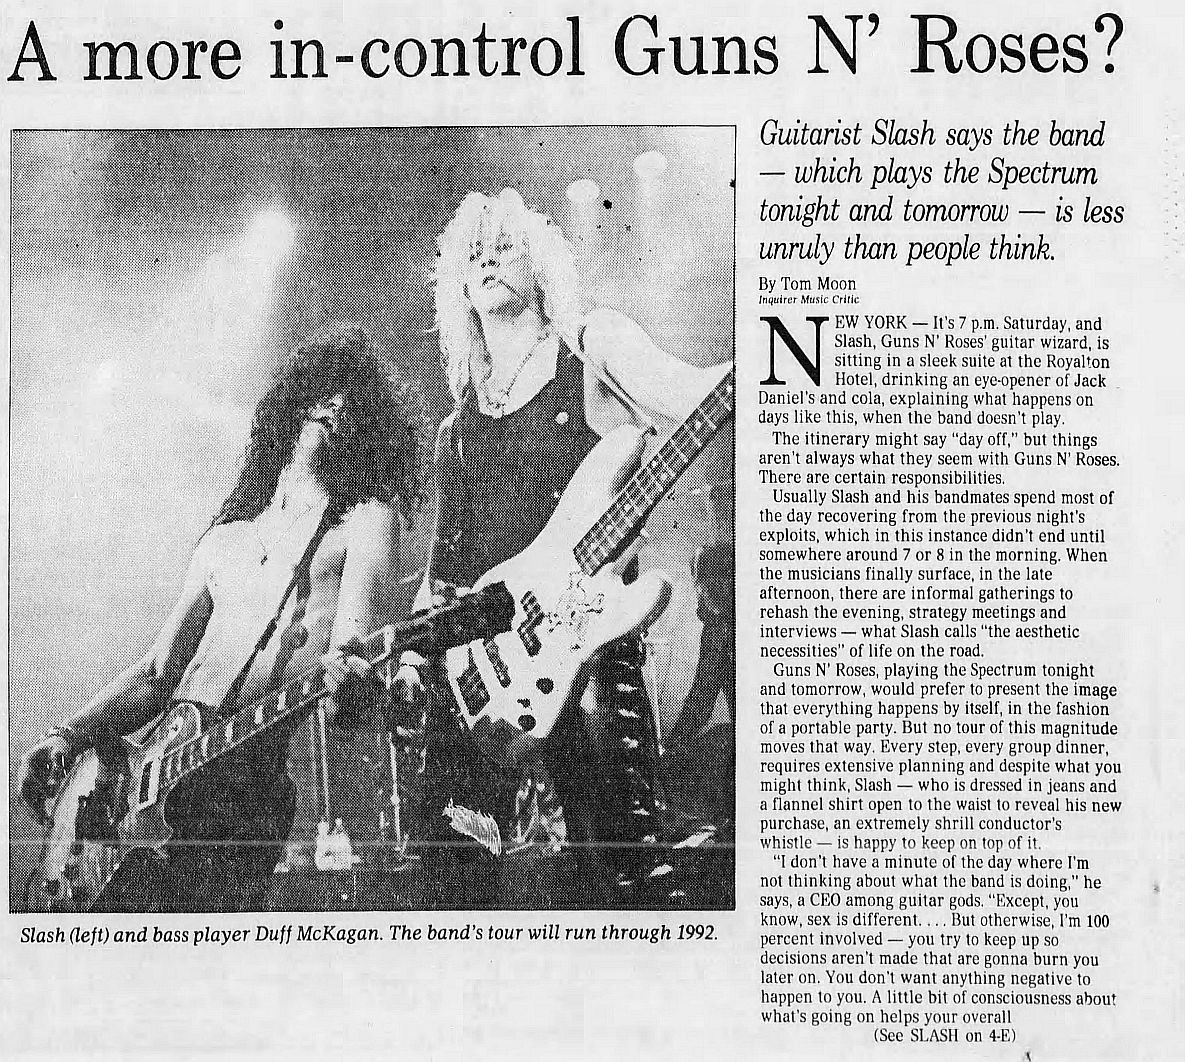 1991.12.16 - The Philadelphia Inquirer - A more in-control Guns N' Roses? (Slash) 1GT1Bckh_o